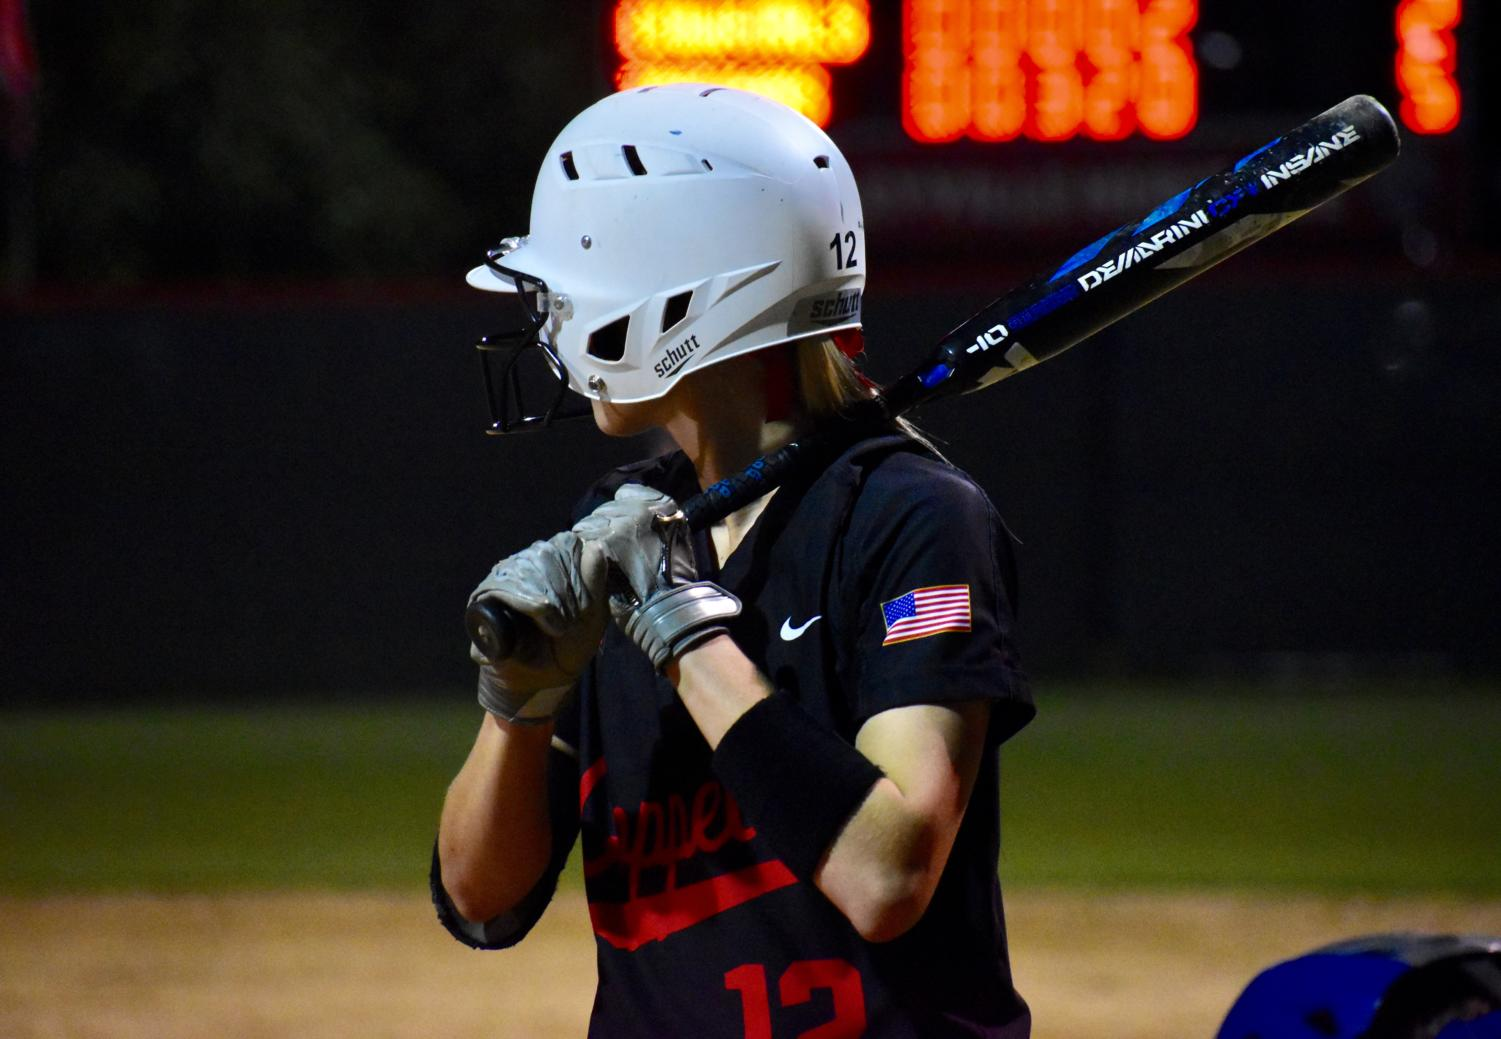 Coppell+sophomore+shortstop+Sydney+Ingle+bats+at+the+game+against+Keller+at+the+Colleyville+Heritage+High+School+on+Friday.+The+Cowgirls+lost%2C+5-2%2C+as+their+season+ended+in+the+first+round+of+playoffs.